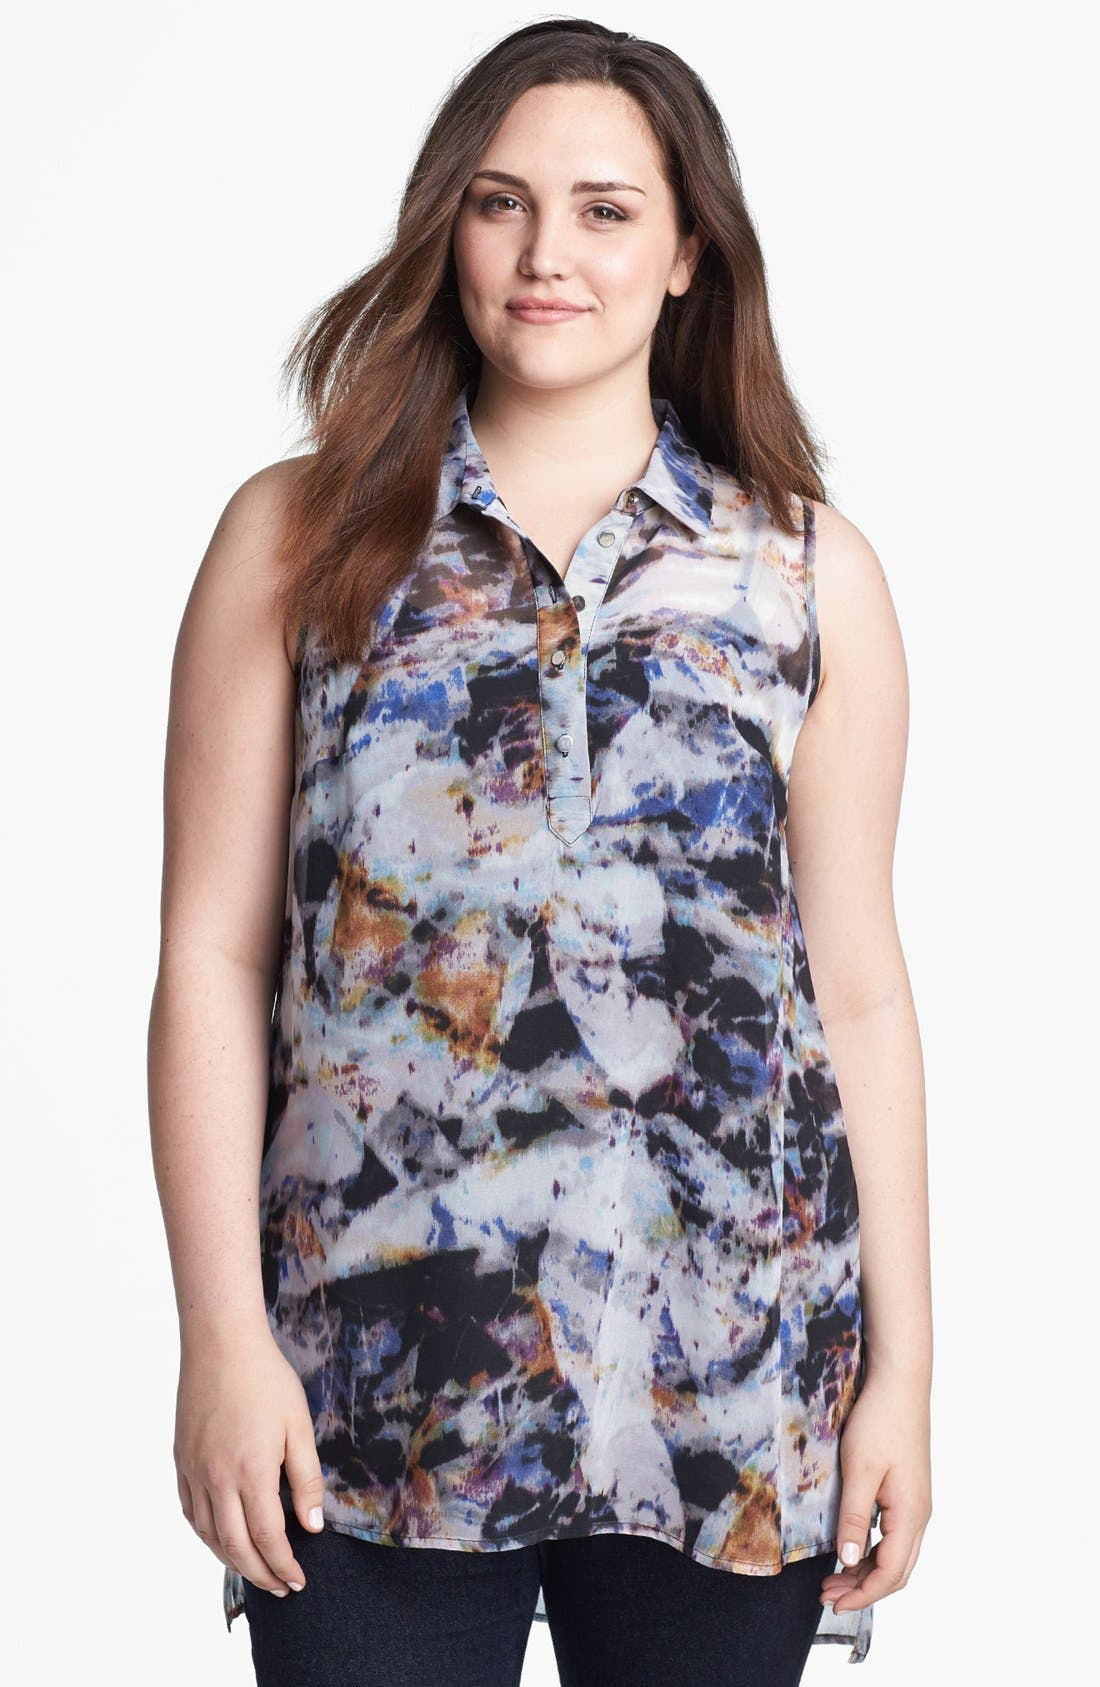 Alternate Image 1 Selected - Evans Print Sleeveless Top (Plus Size)